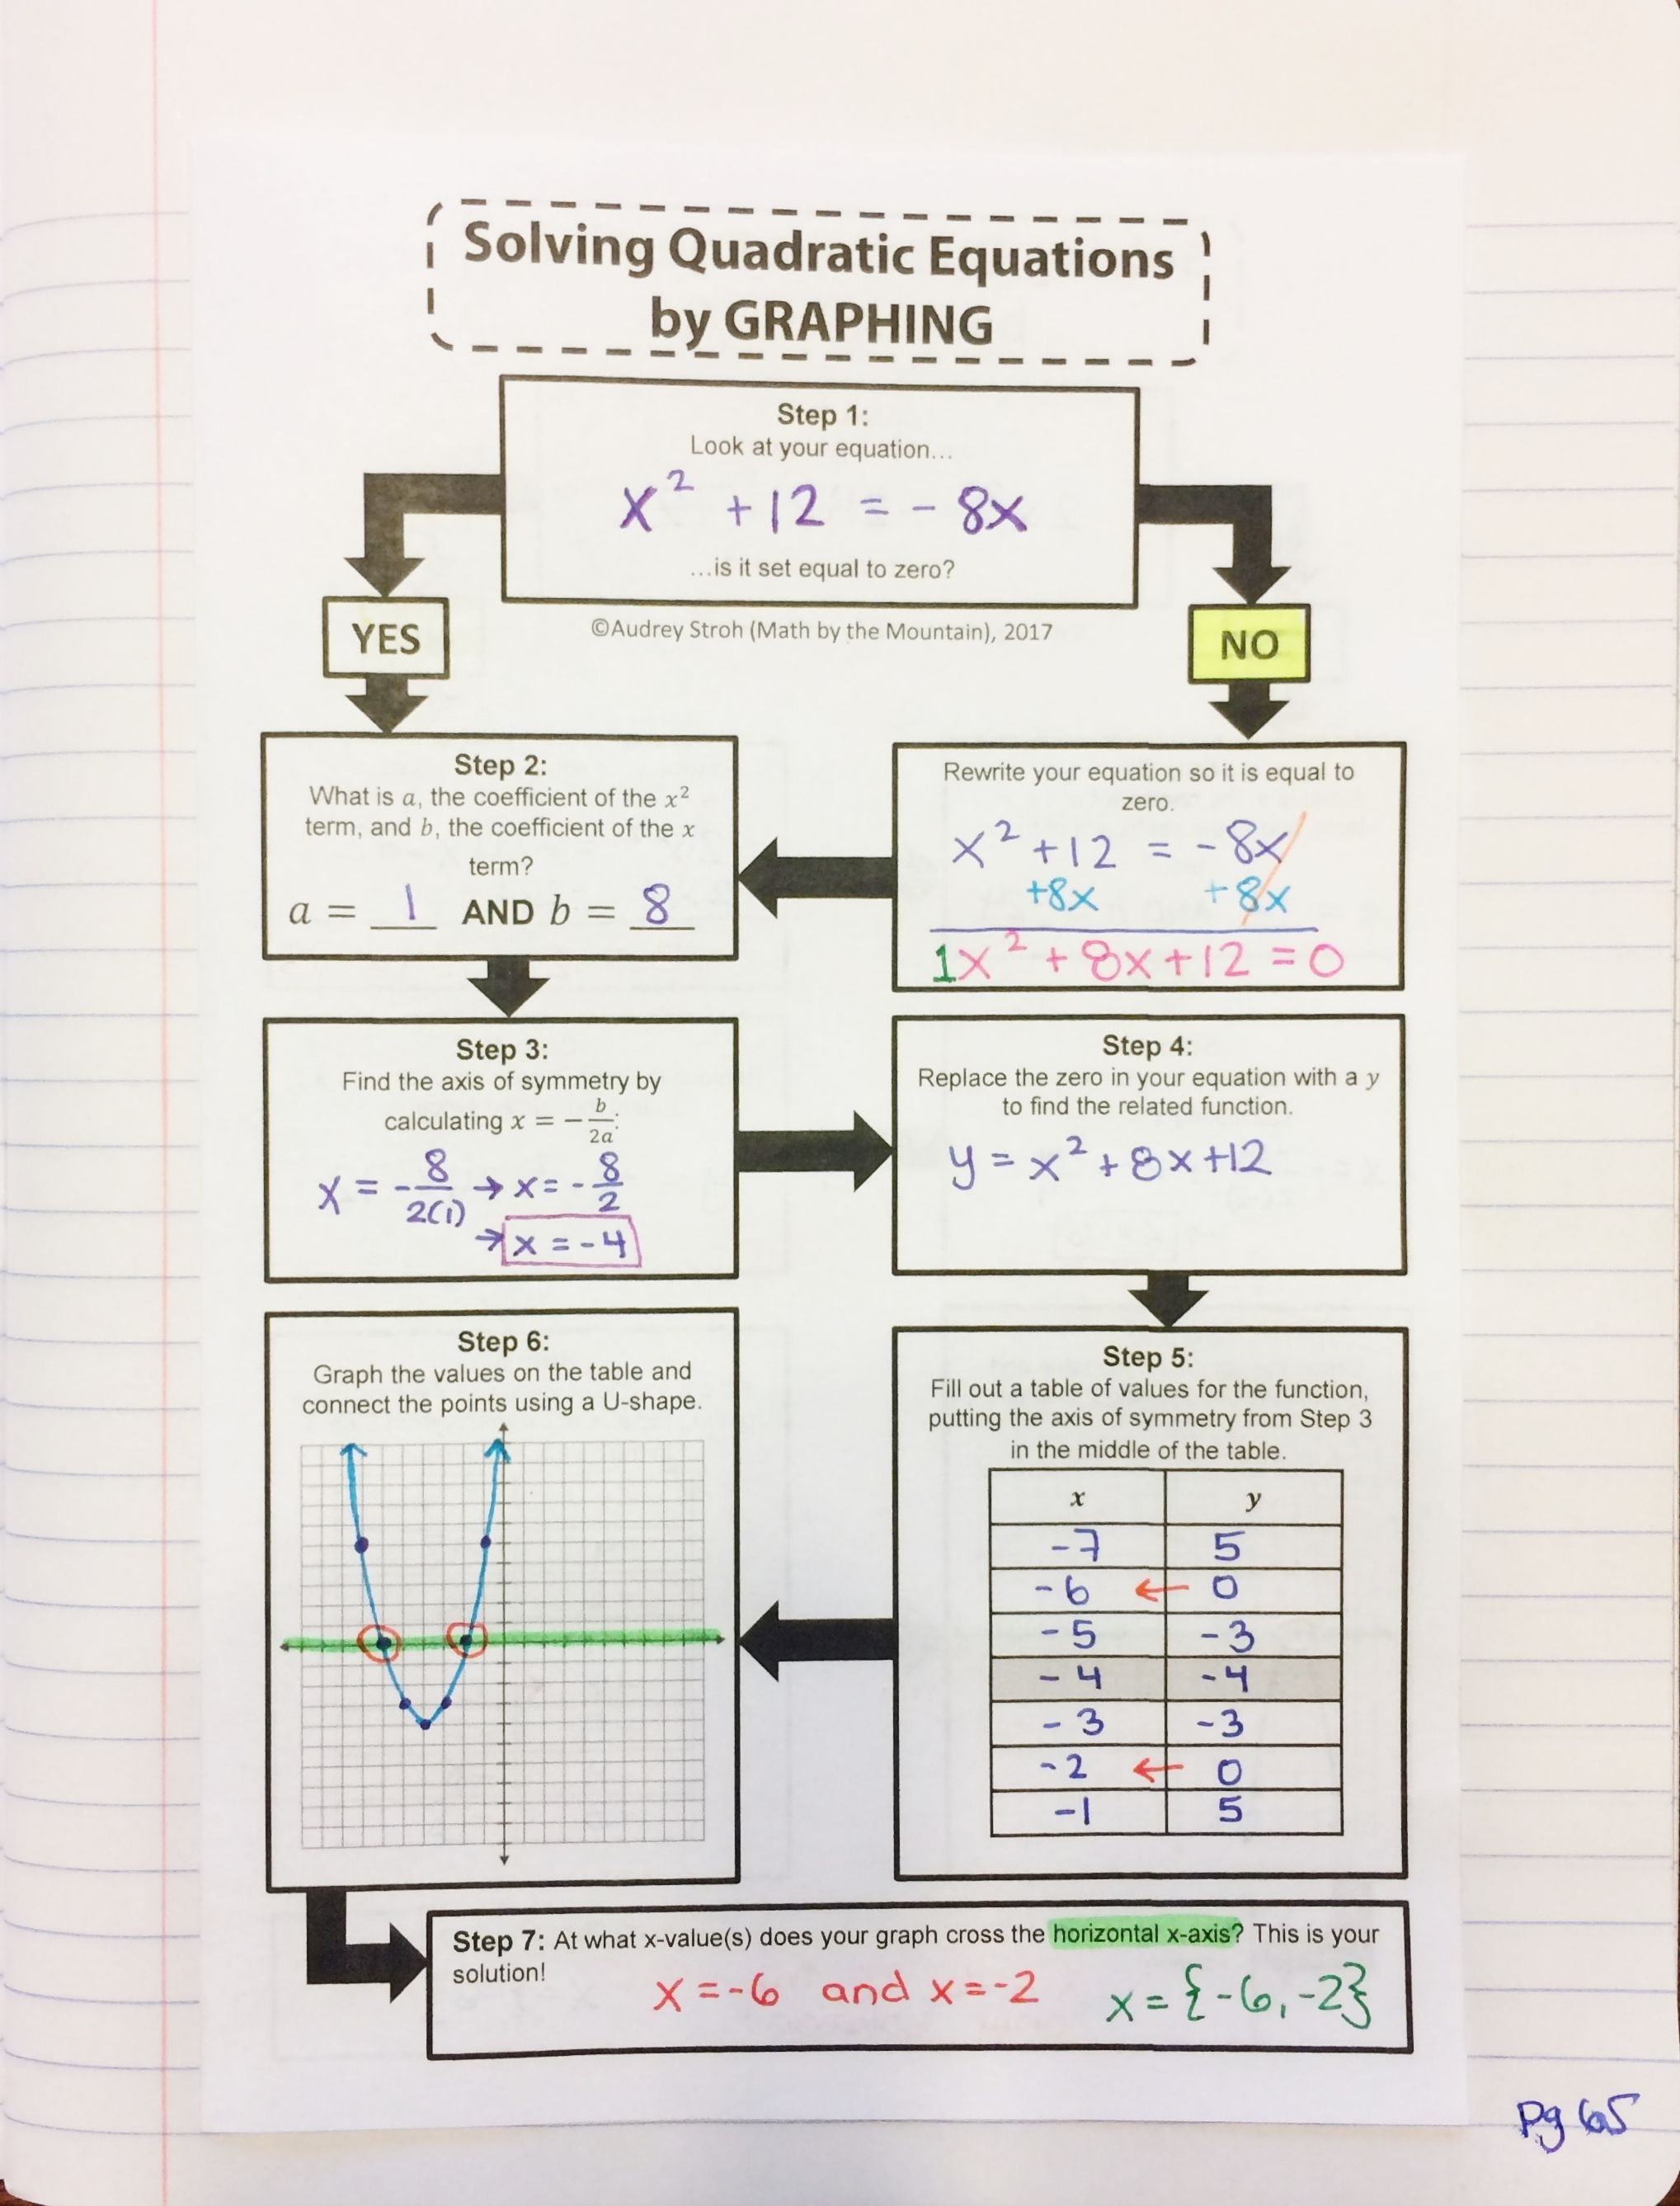 Solving Quadratic Equations By Graphing Flowchart Graphic Organizer